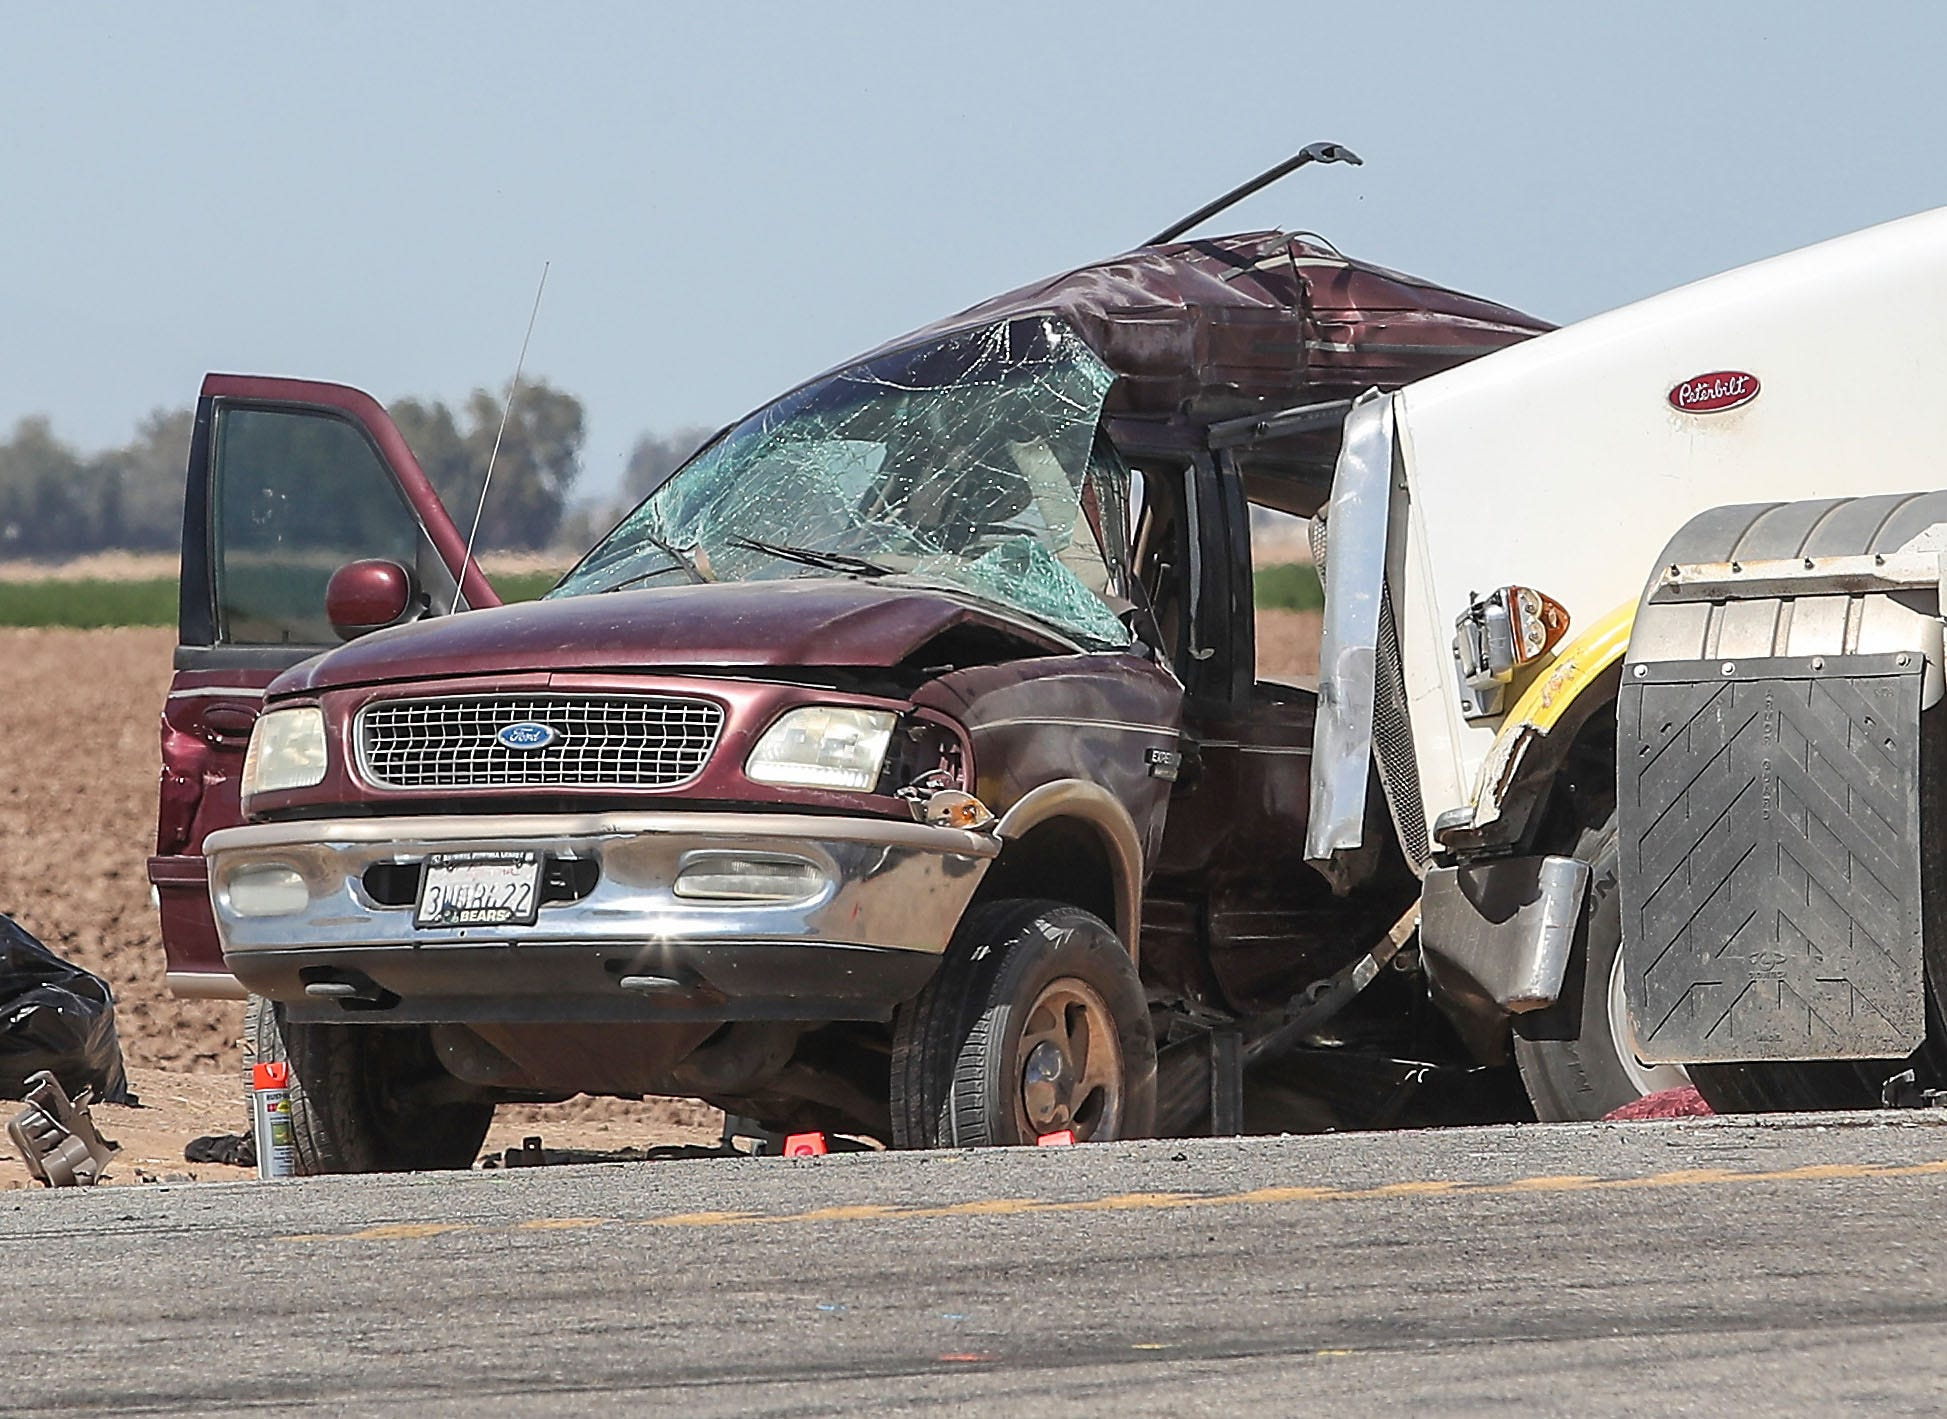 The Ford Expedition that was destroyed when it collided with a big rig sits on the side of State Route 115 near Holtville, Calif., as investigators try to determine what happened March 2.